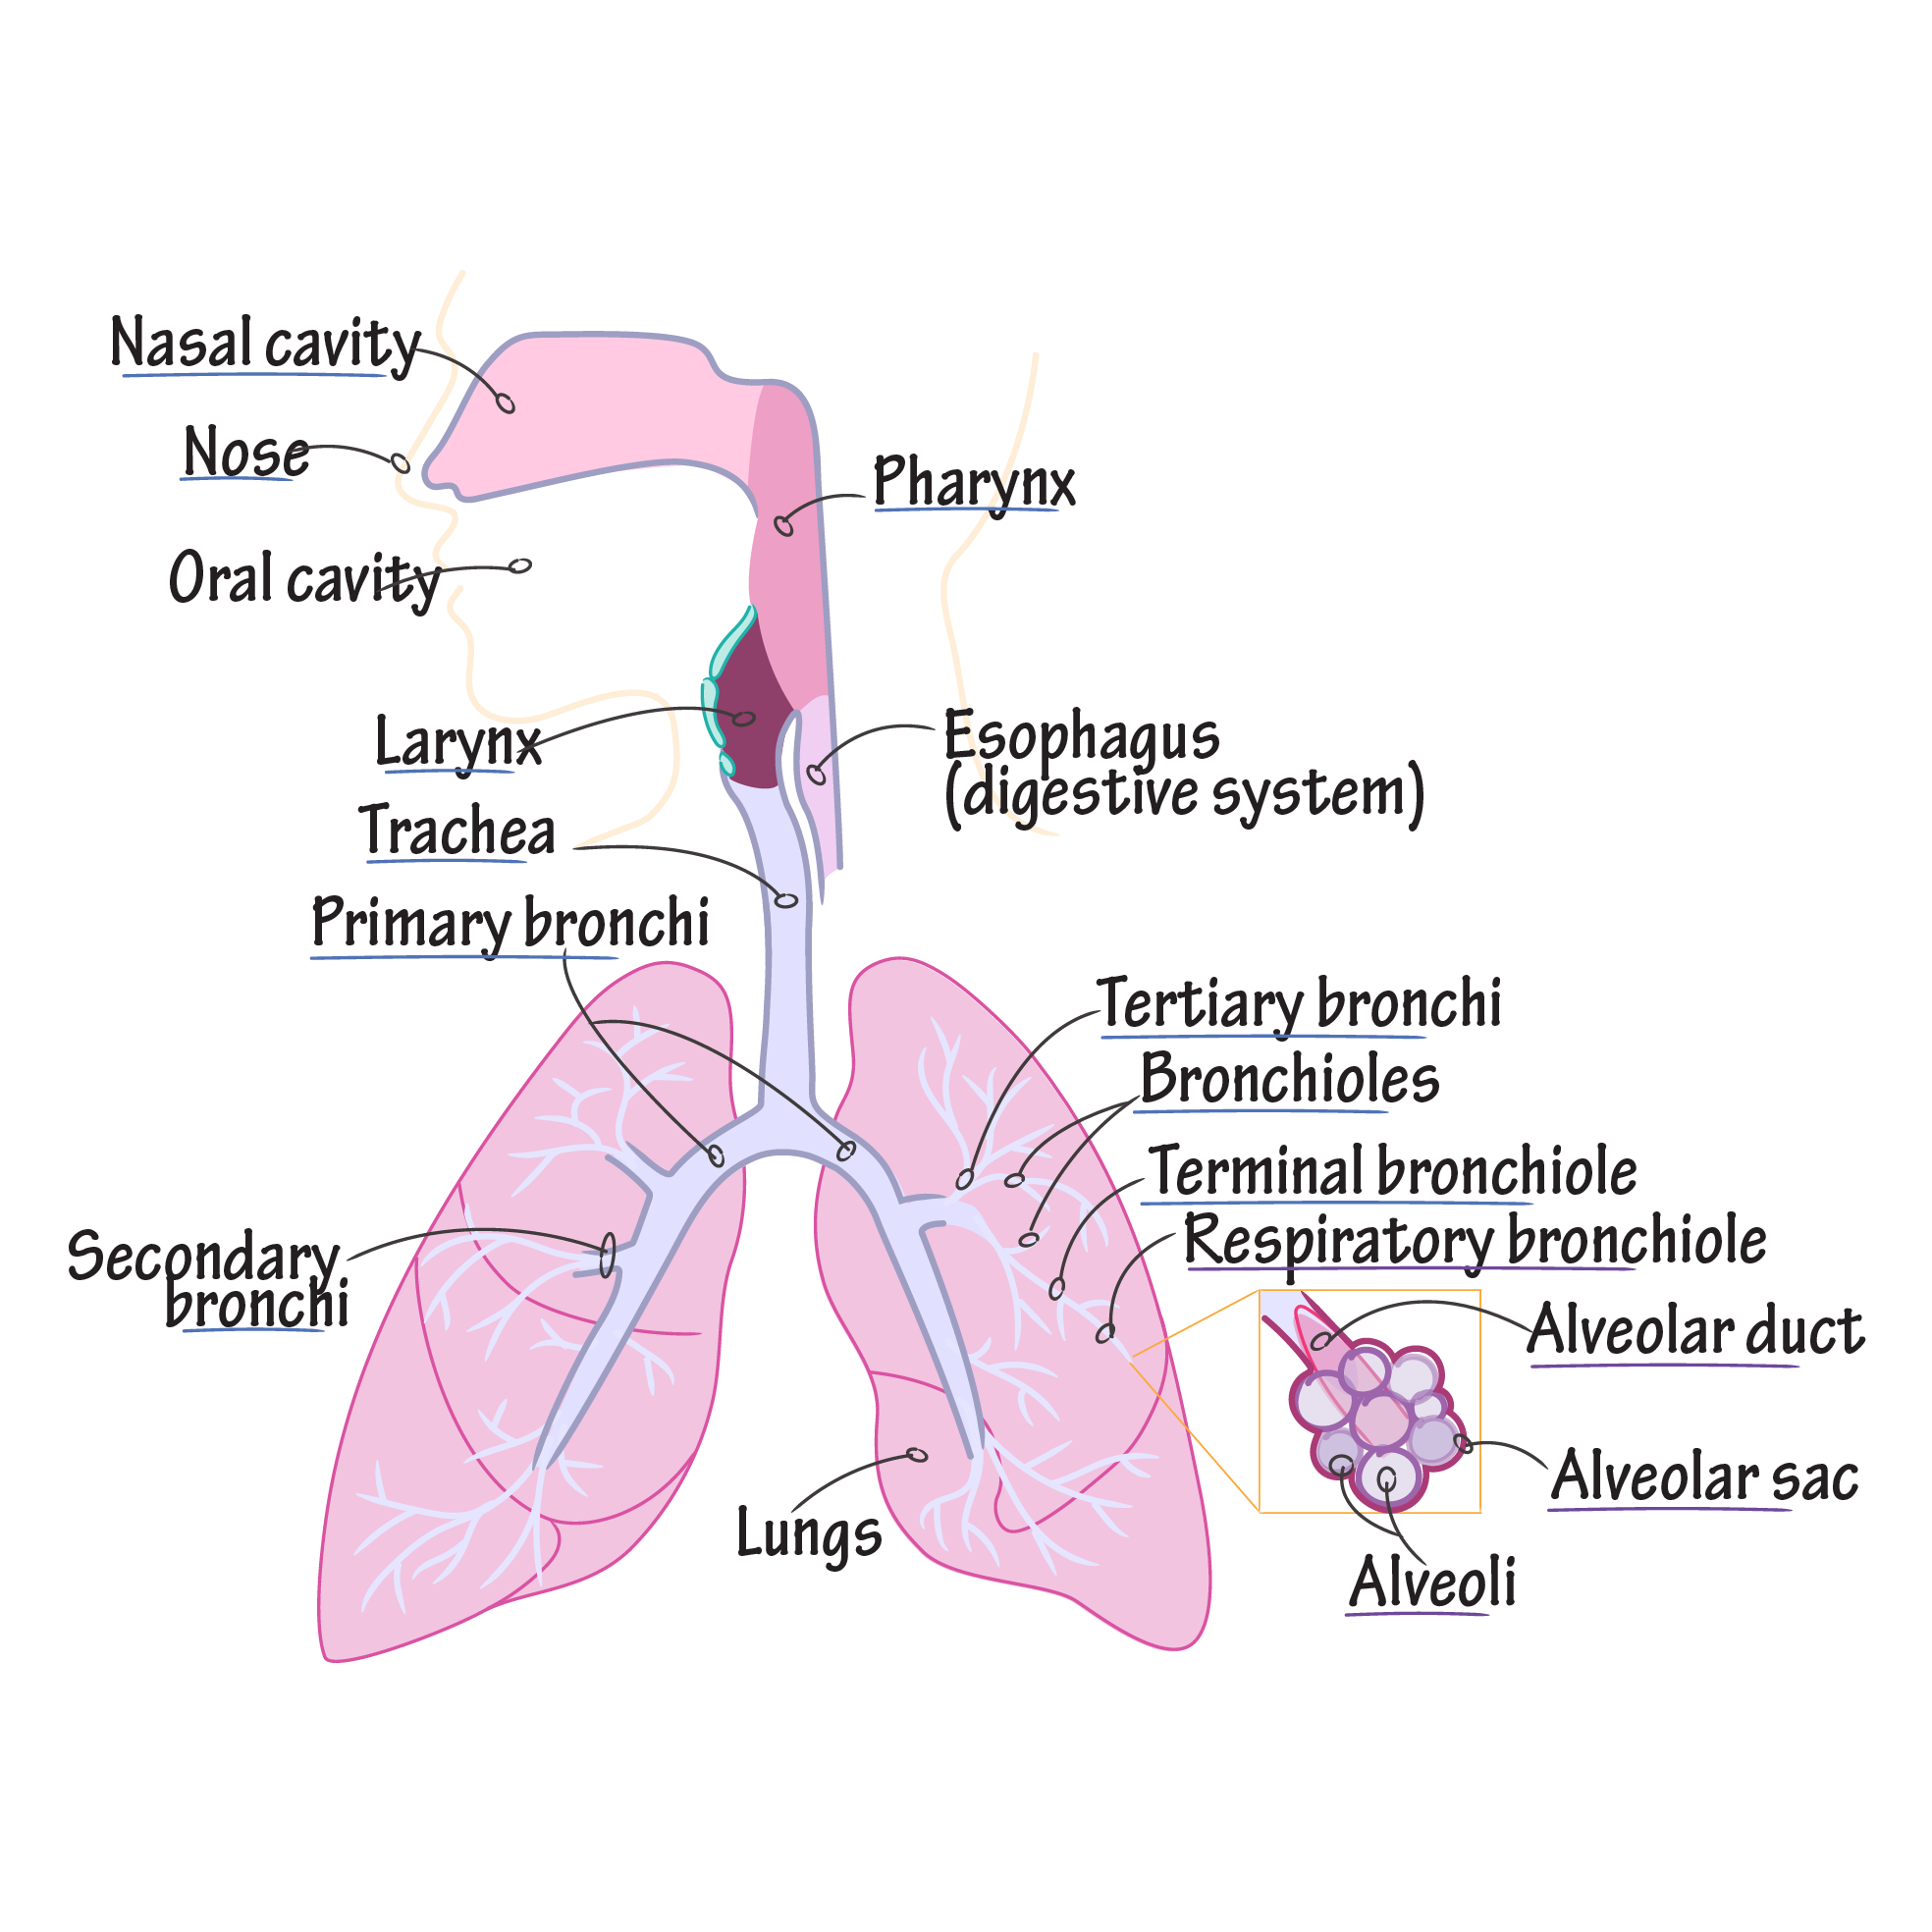 Respiratory System Draw It To Know It Respiratory System Anatomy Human Anatomy And Physiology Respiratory System